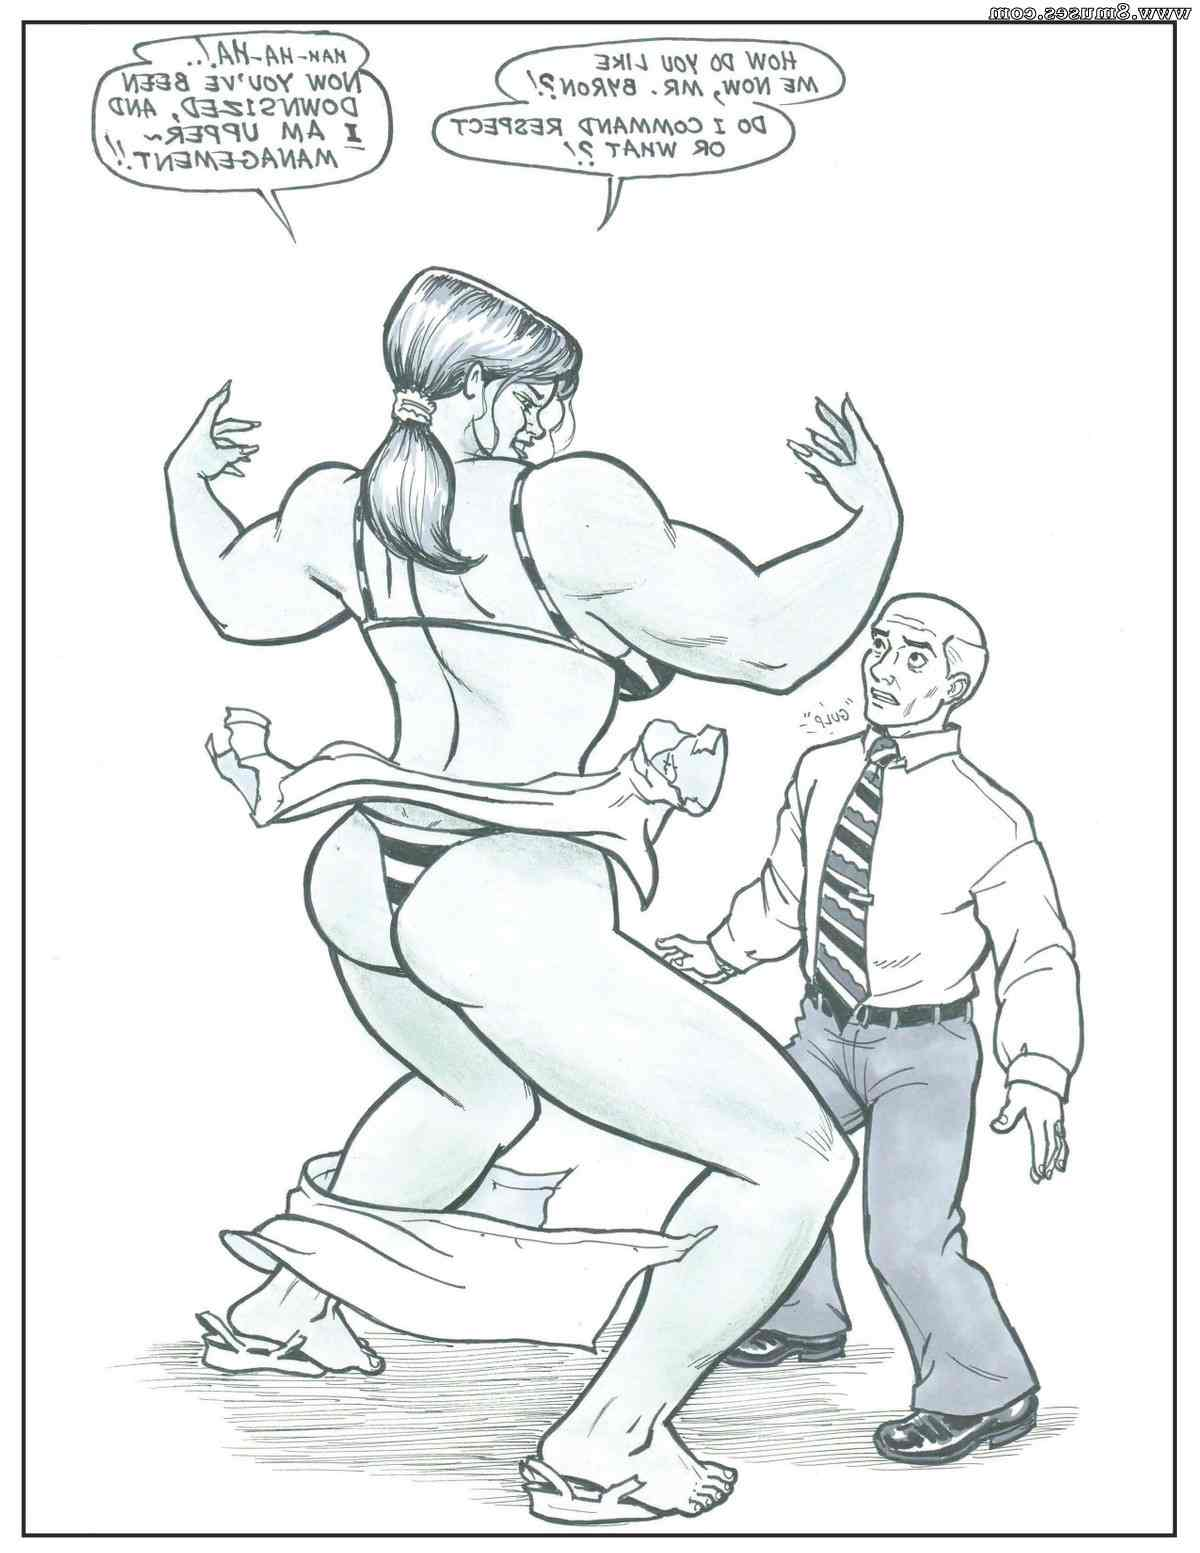 DreamTales-Comics/Bojays-Book-of-Muscle-Growth Bojays_Book_of_Muscle_Growth__8muses_-_Sex_and_Porn_Comics_32.jpg